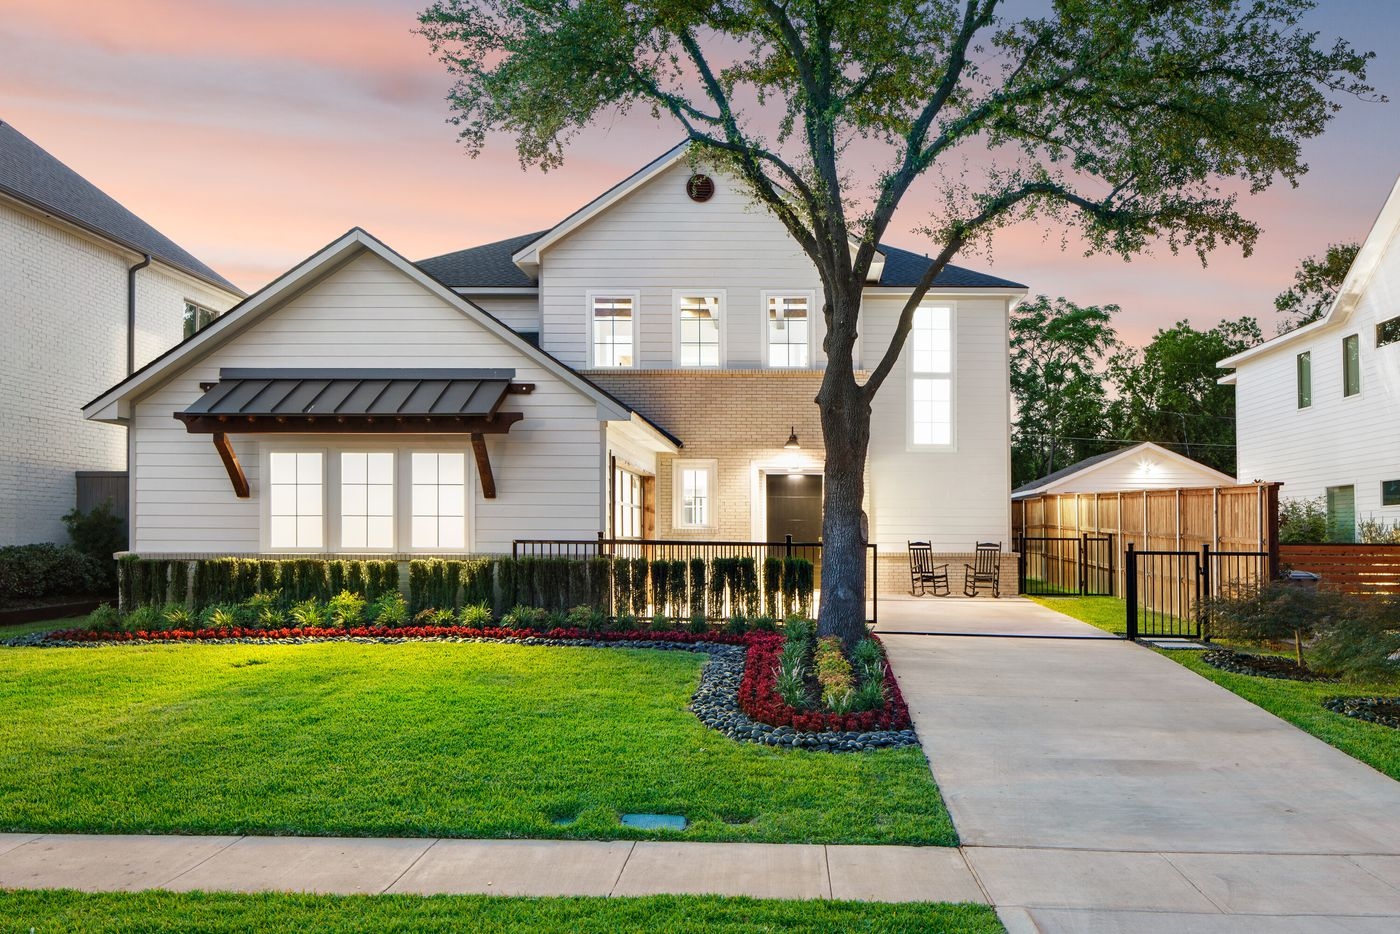 Take a look at the inside of the home at 3935 Lively Lane in Dallas, TX.